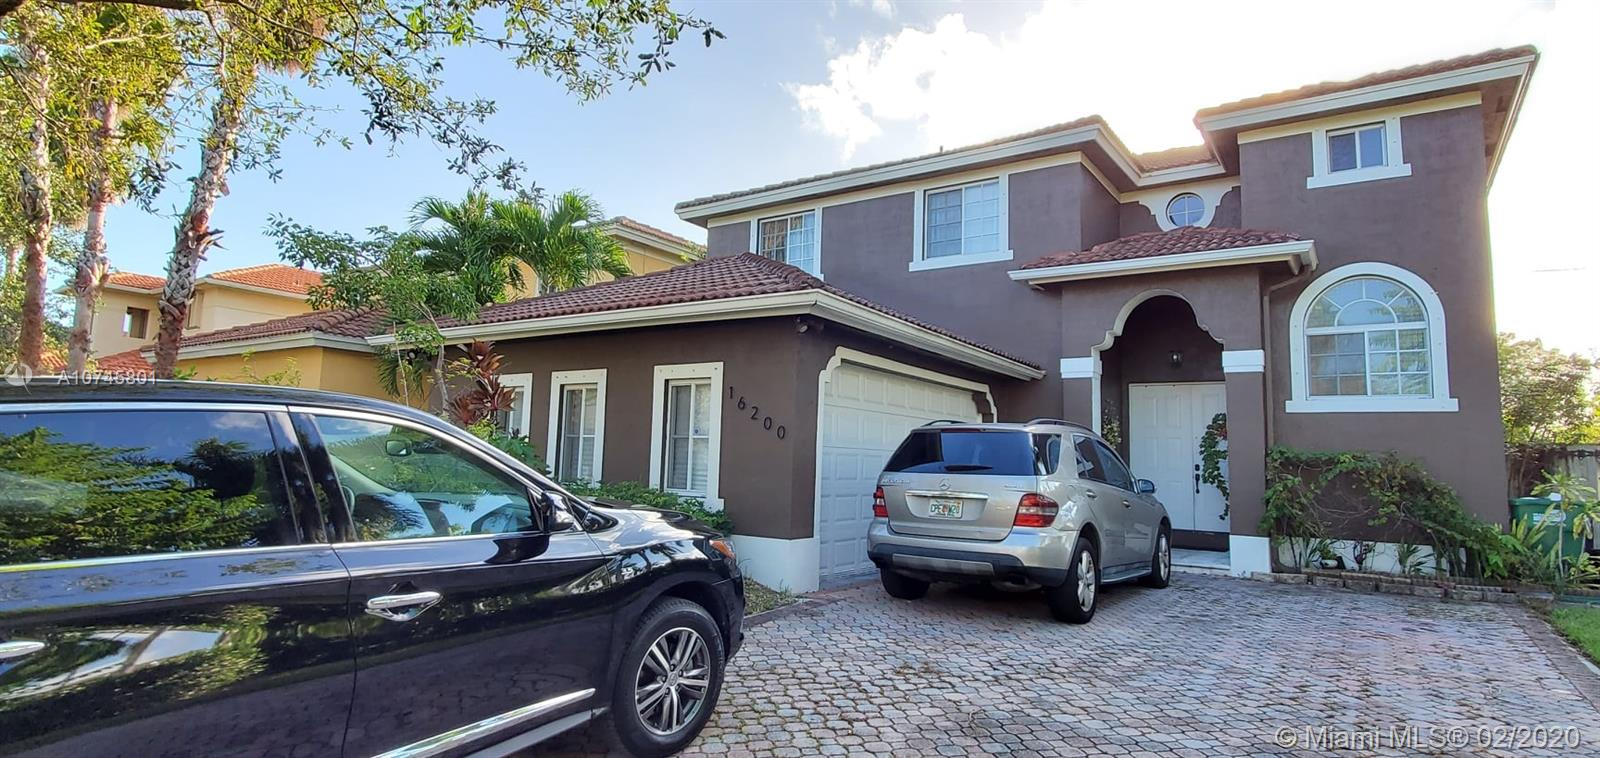 16200 SW 91 Court  For Sale A10745801, FL